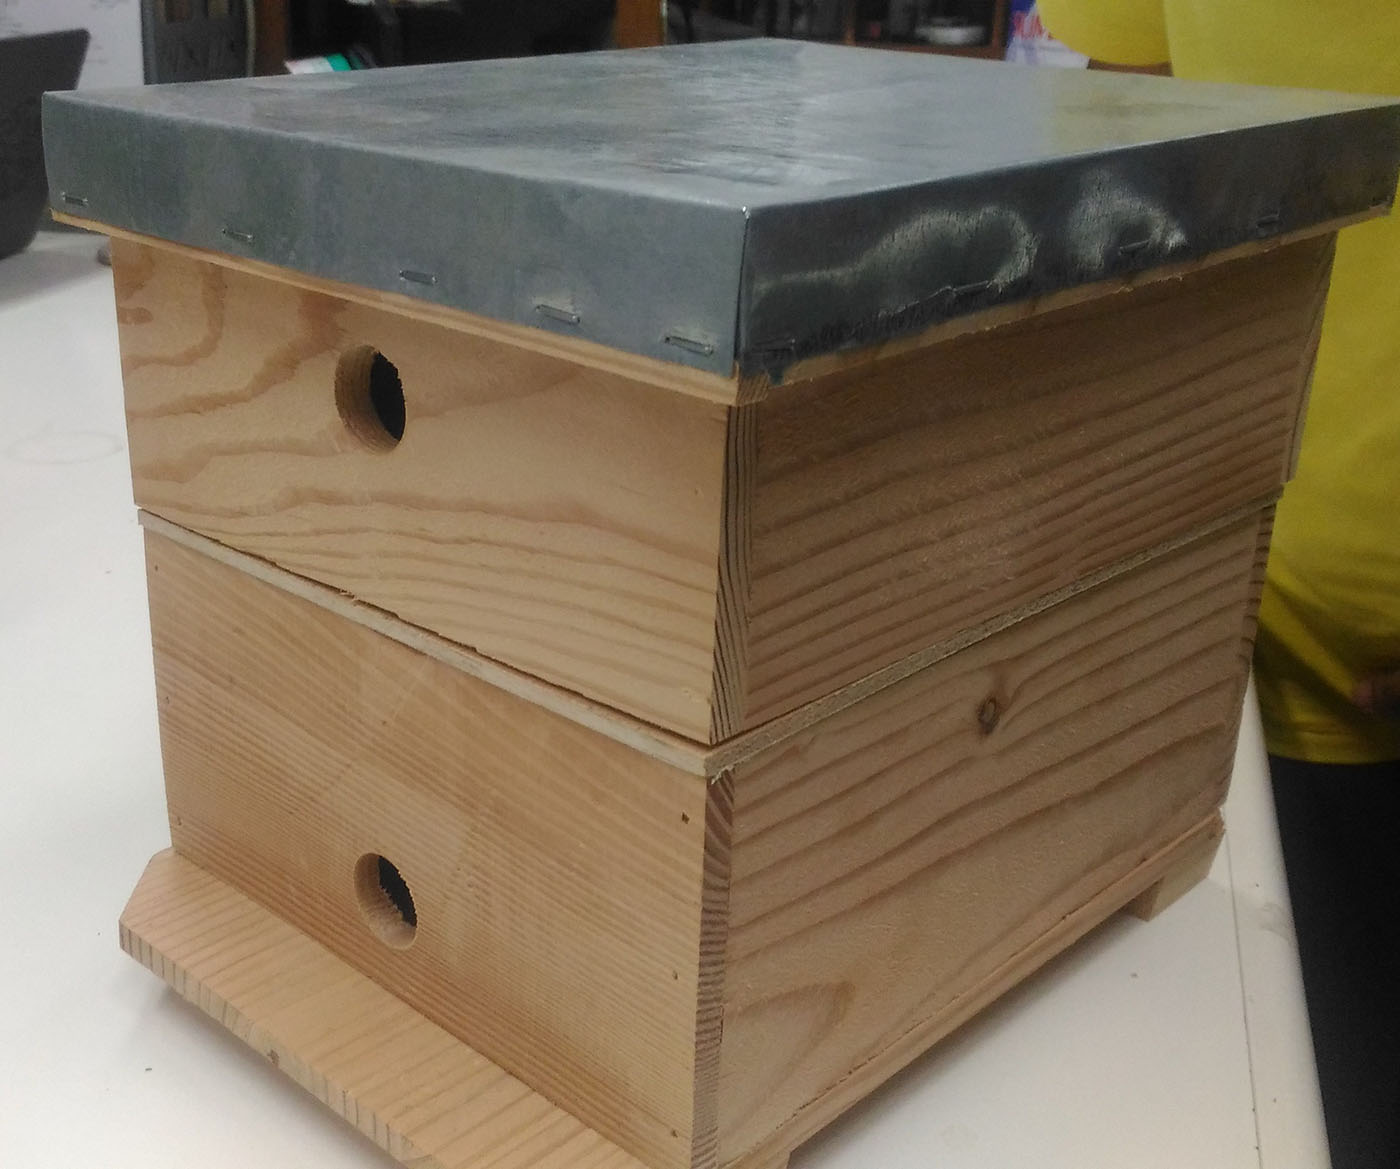 POLLINATION HIVE. UPLB developed this bee hive for efficient and large-scale pollination. Photo by BBu